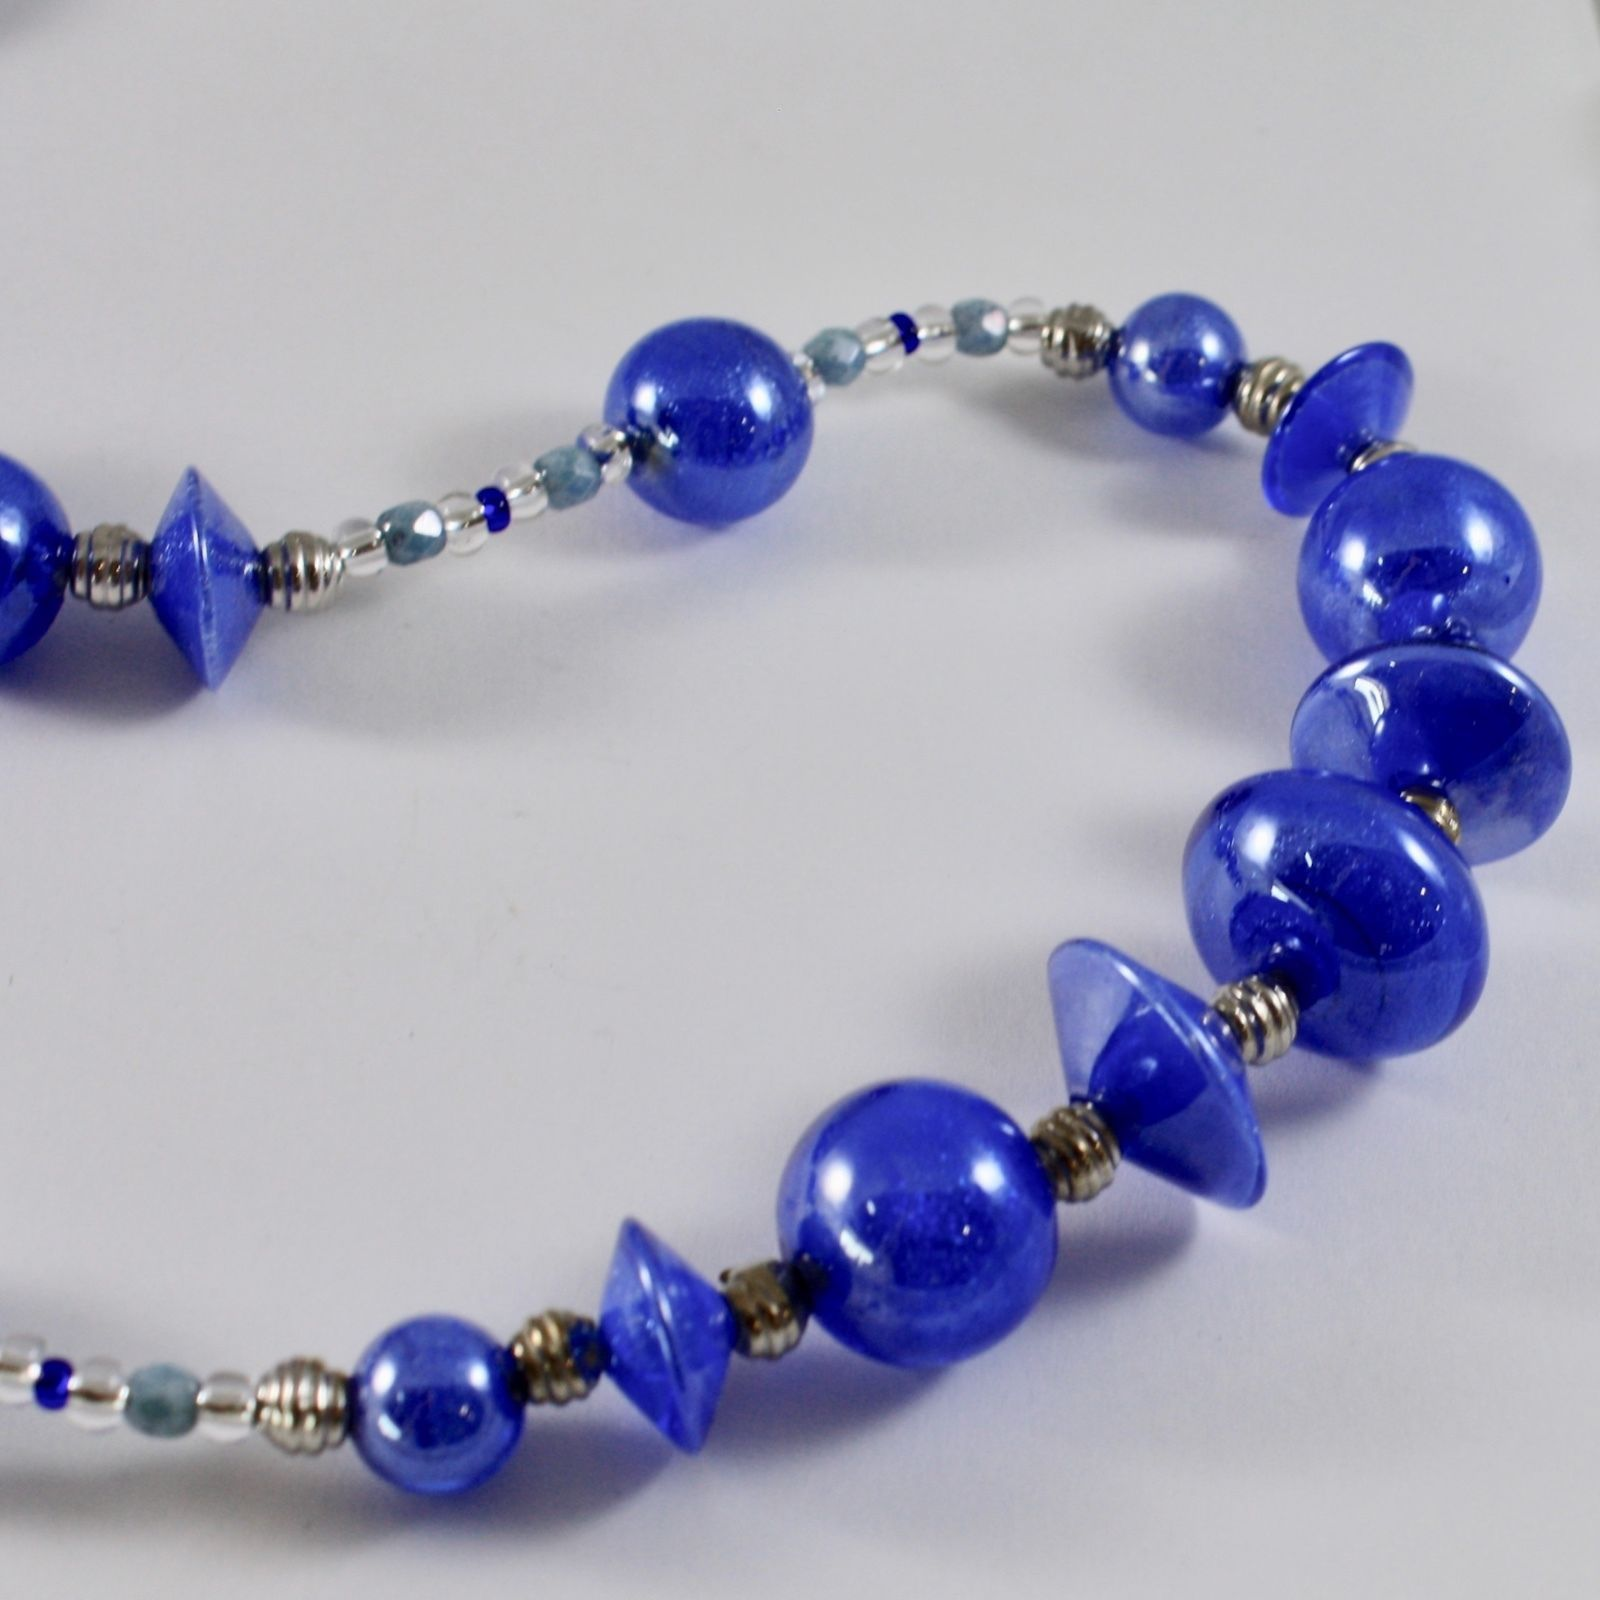 NECKLACE ANTICA MURRINA VENEZIA WITH MURANO GLASS DISCS SPHERES BLUE LONG 80 CM